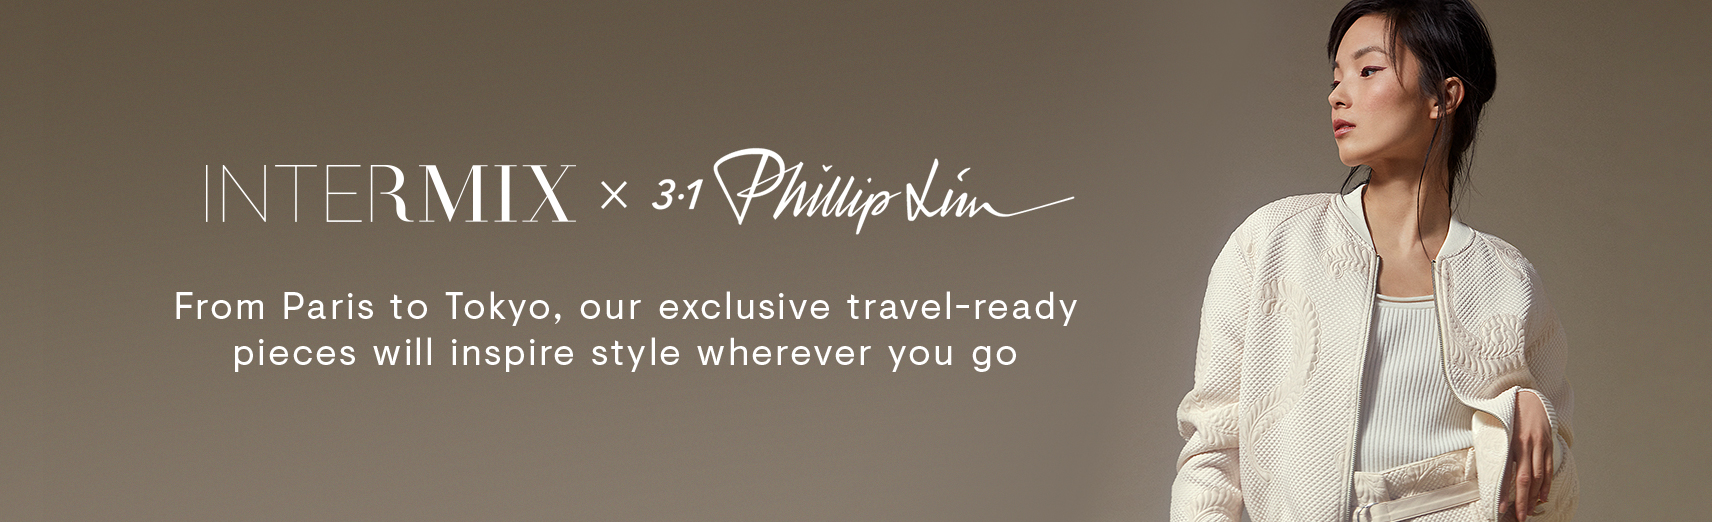 INTERMIX x 3.1 Phillip Lim